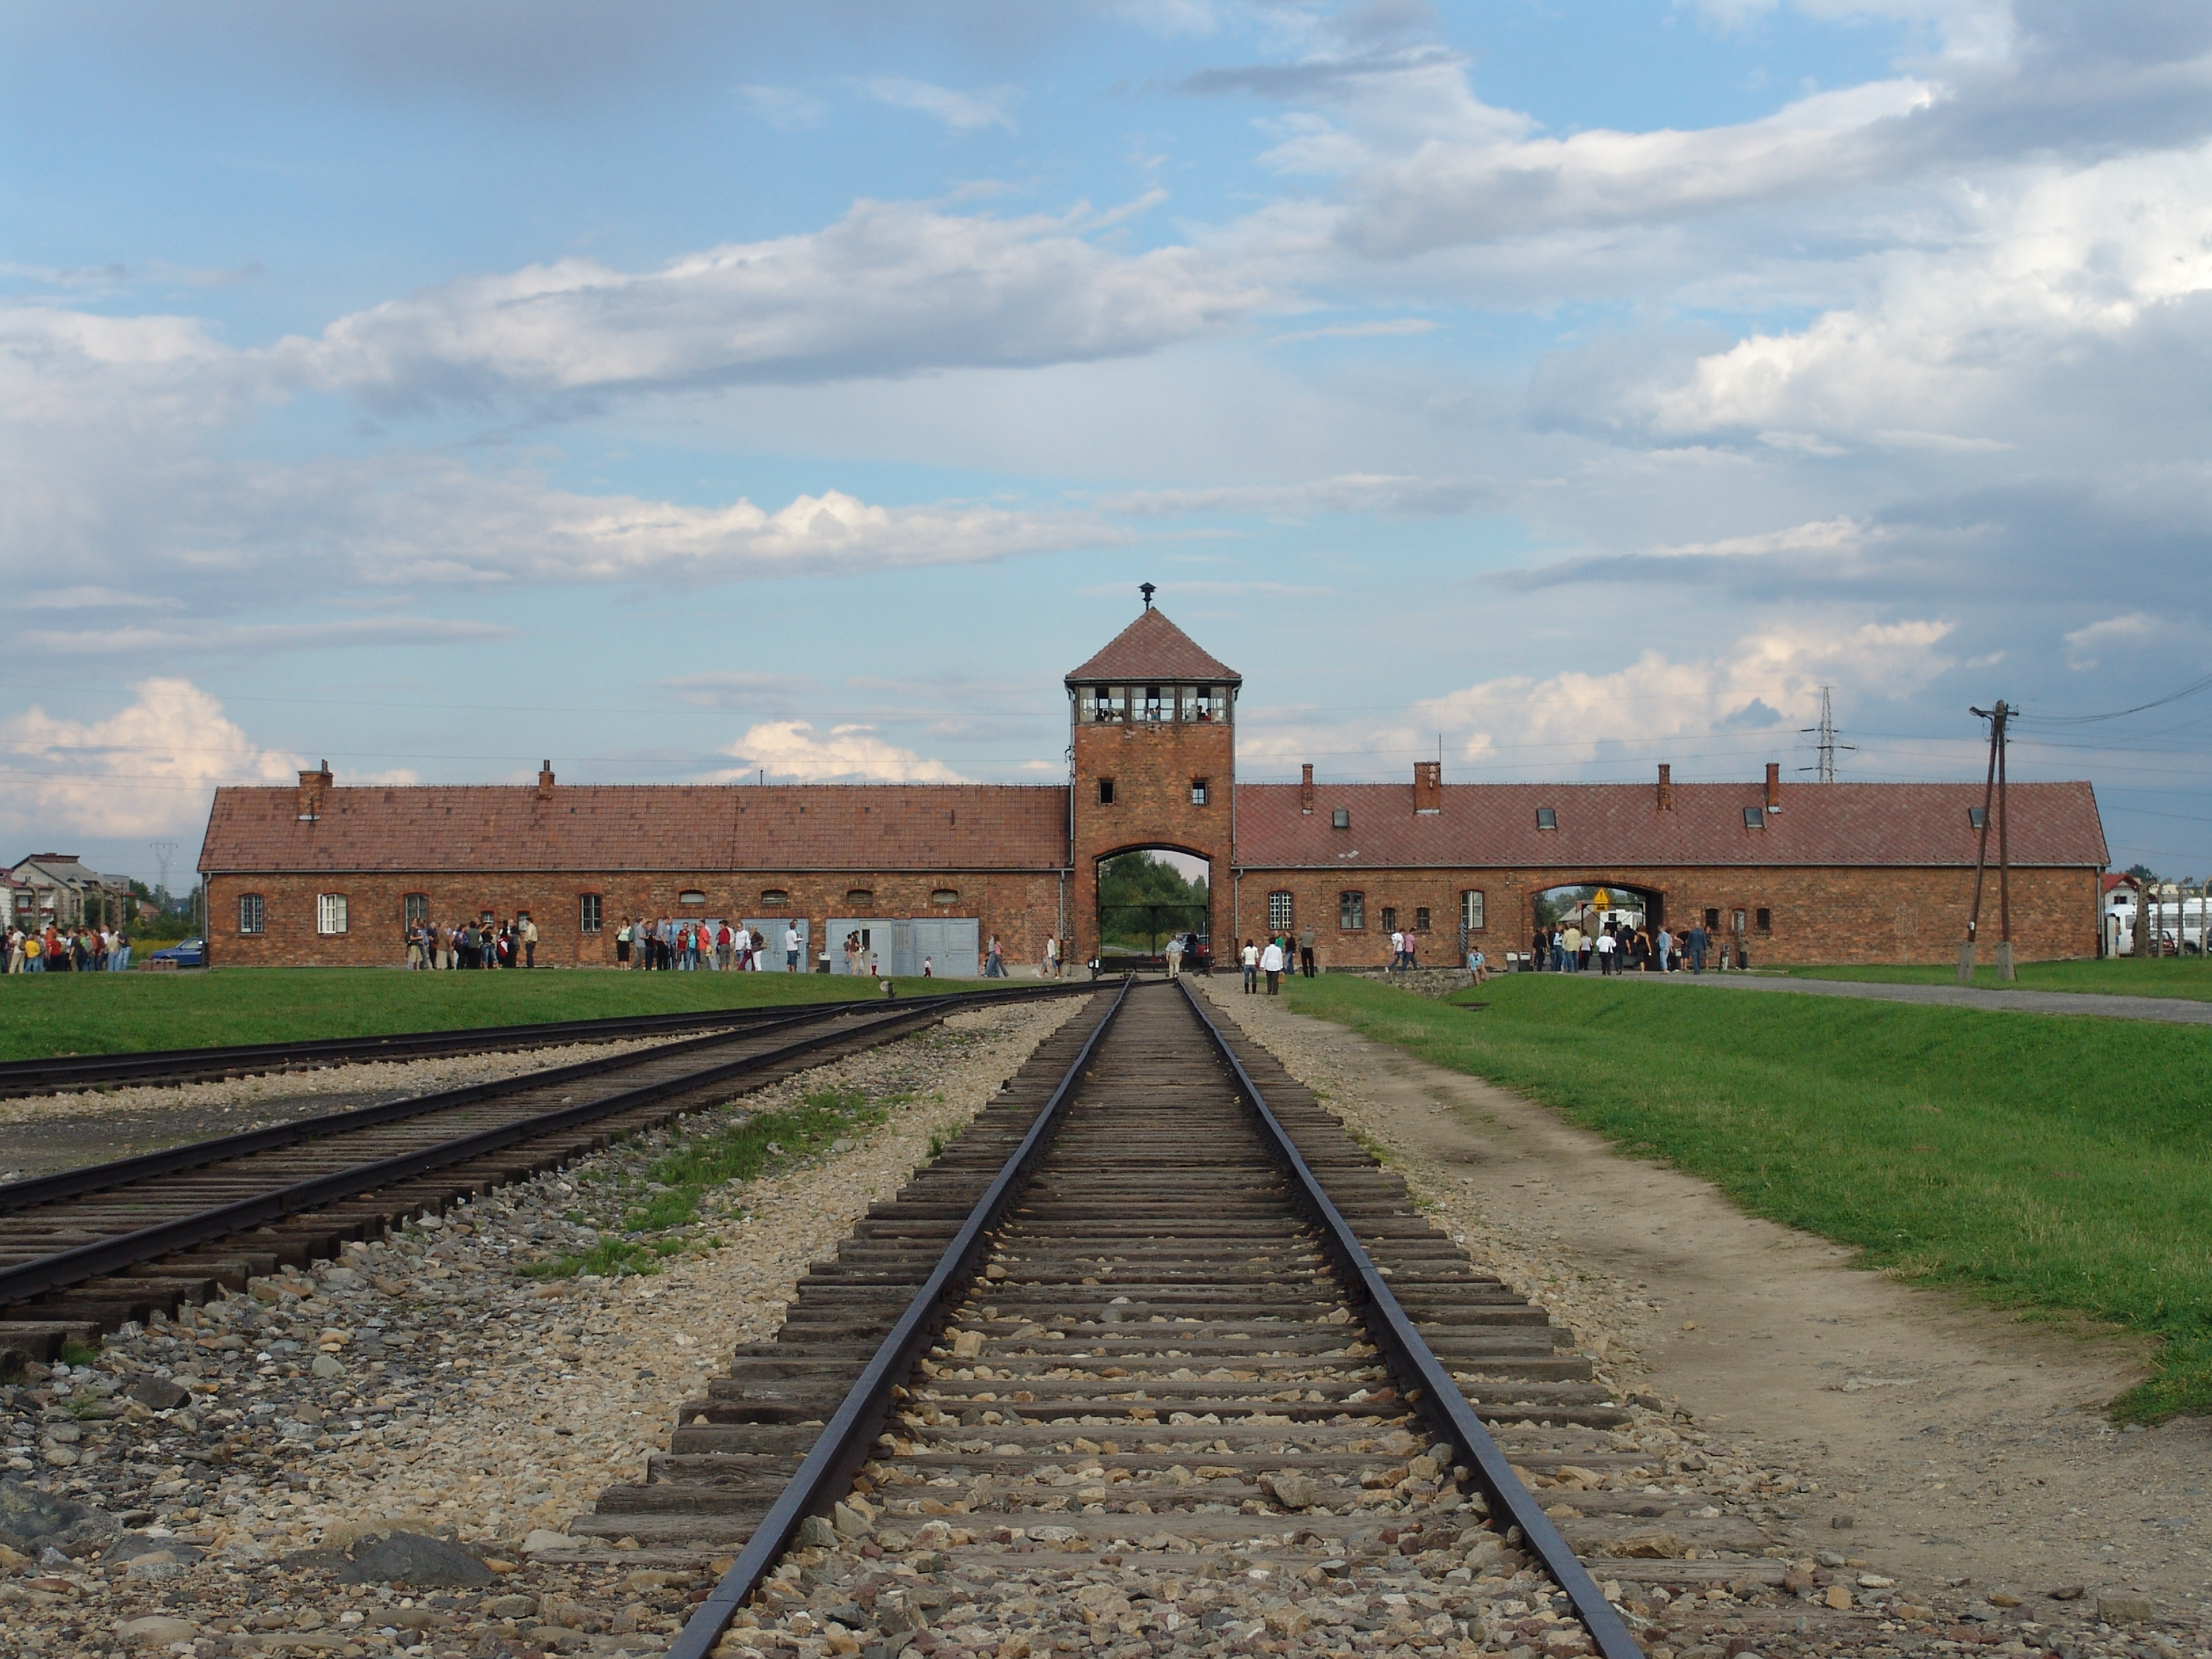 """The main gate at the former German Nazi death camp of Auschwitz II (Birkenau). Note that this is inside the camp looking back from the loading ramp to the """"Gate of Death"""". (Creative Commons CC-BY-SA-2.5)"""